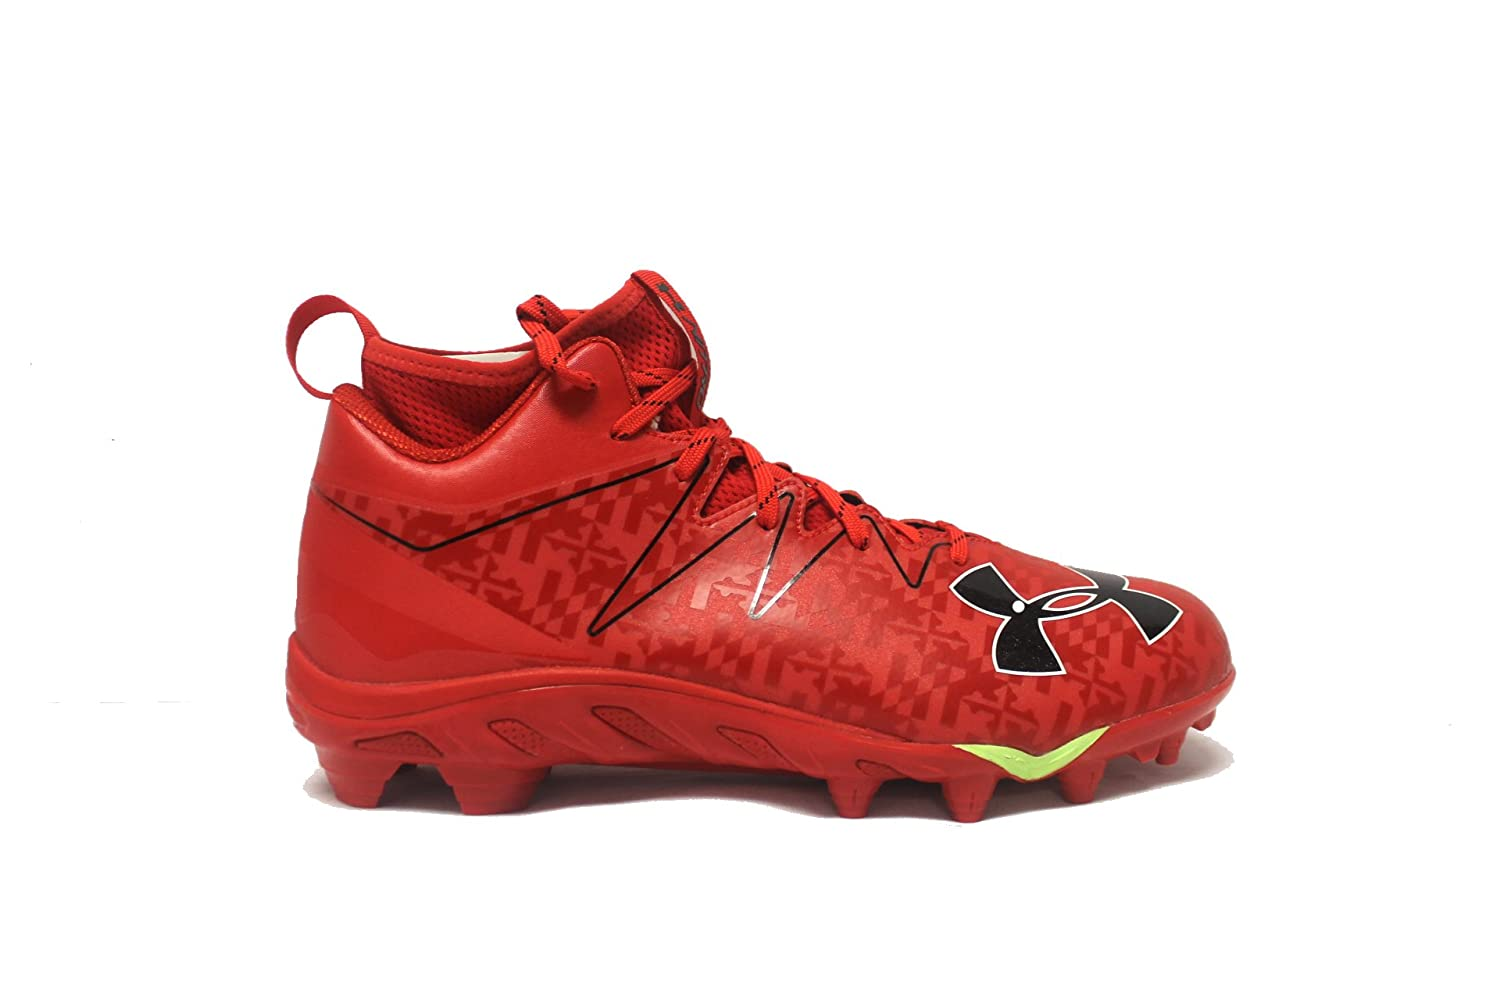 Under Armour メンズ B07DJS1DS2 10.5 D(M) US|Red/Red/Black Red/Red/Black 10.5 D(M) US